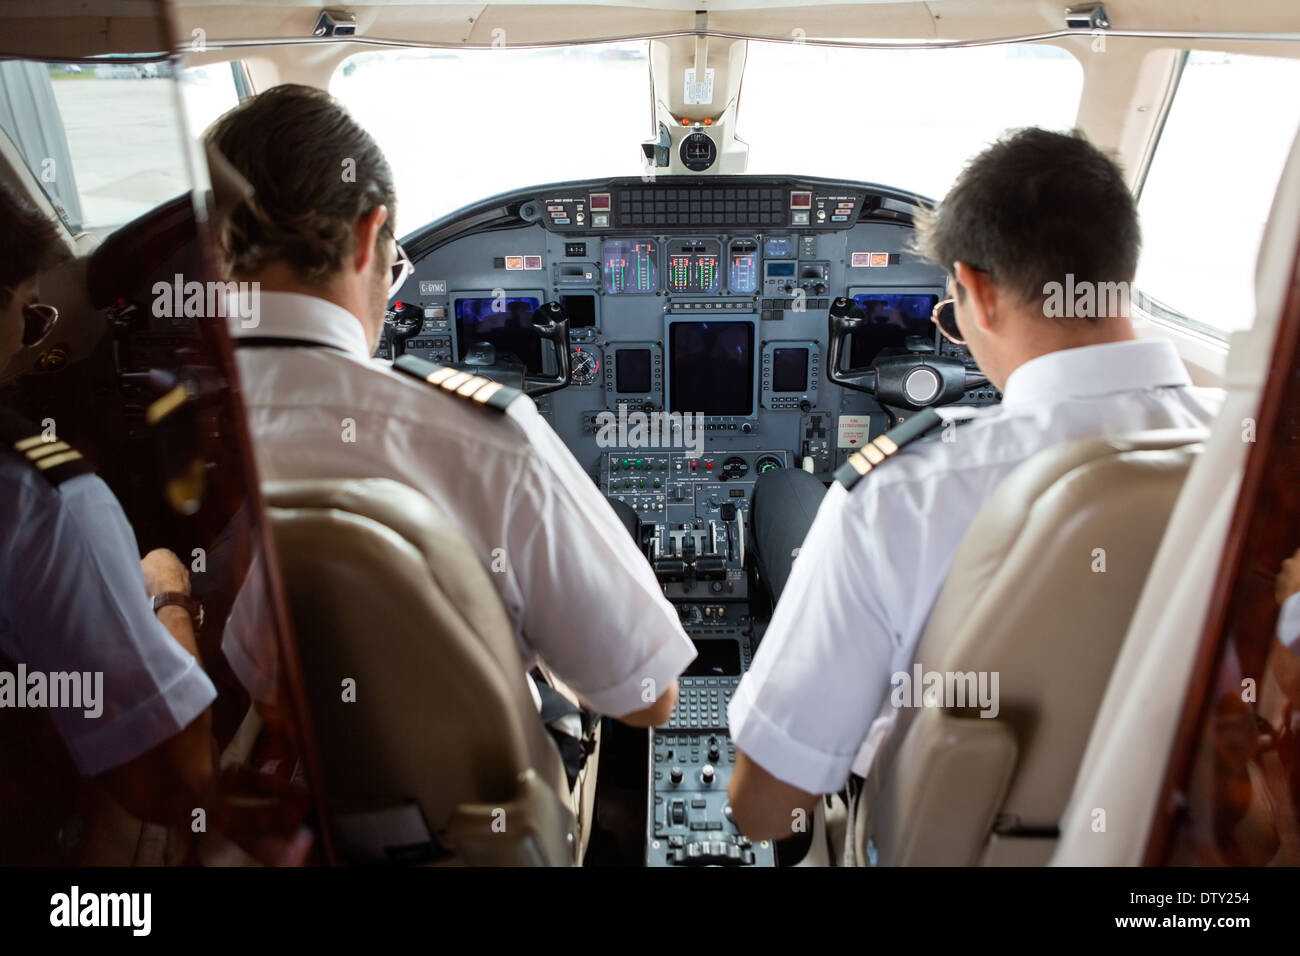 Pilot And Copilot In Cockpit - Stock Image